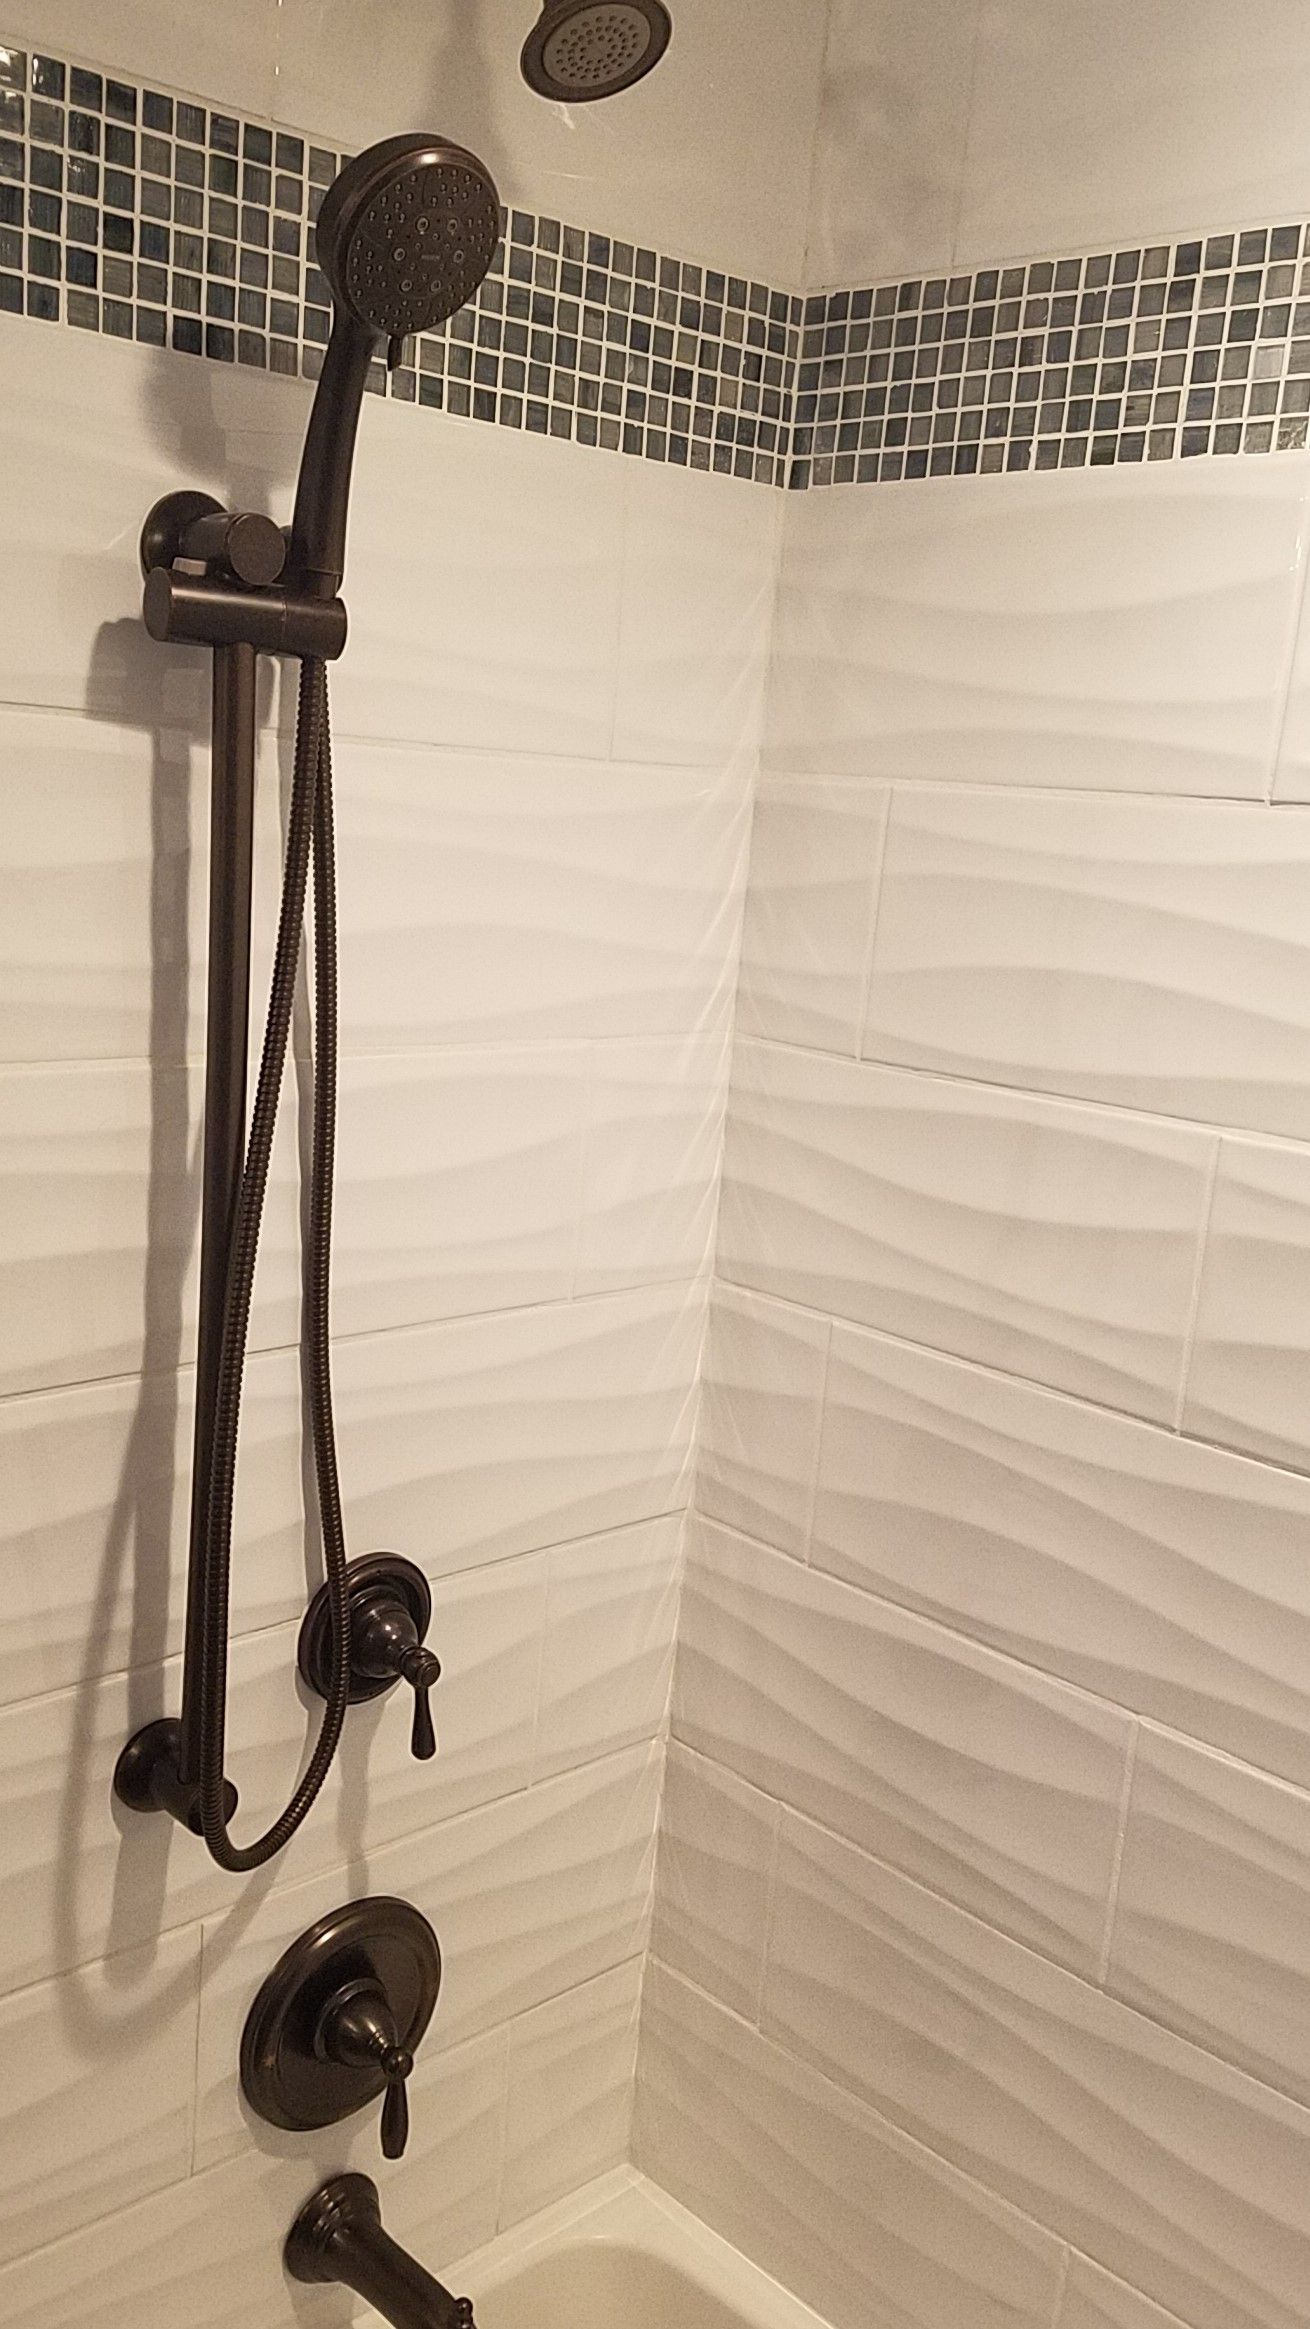 Large Wave Subway Tile In The Shower Area Adds Texture To